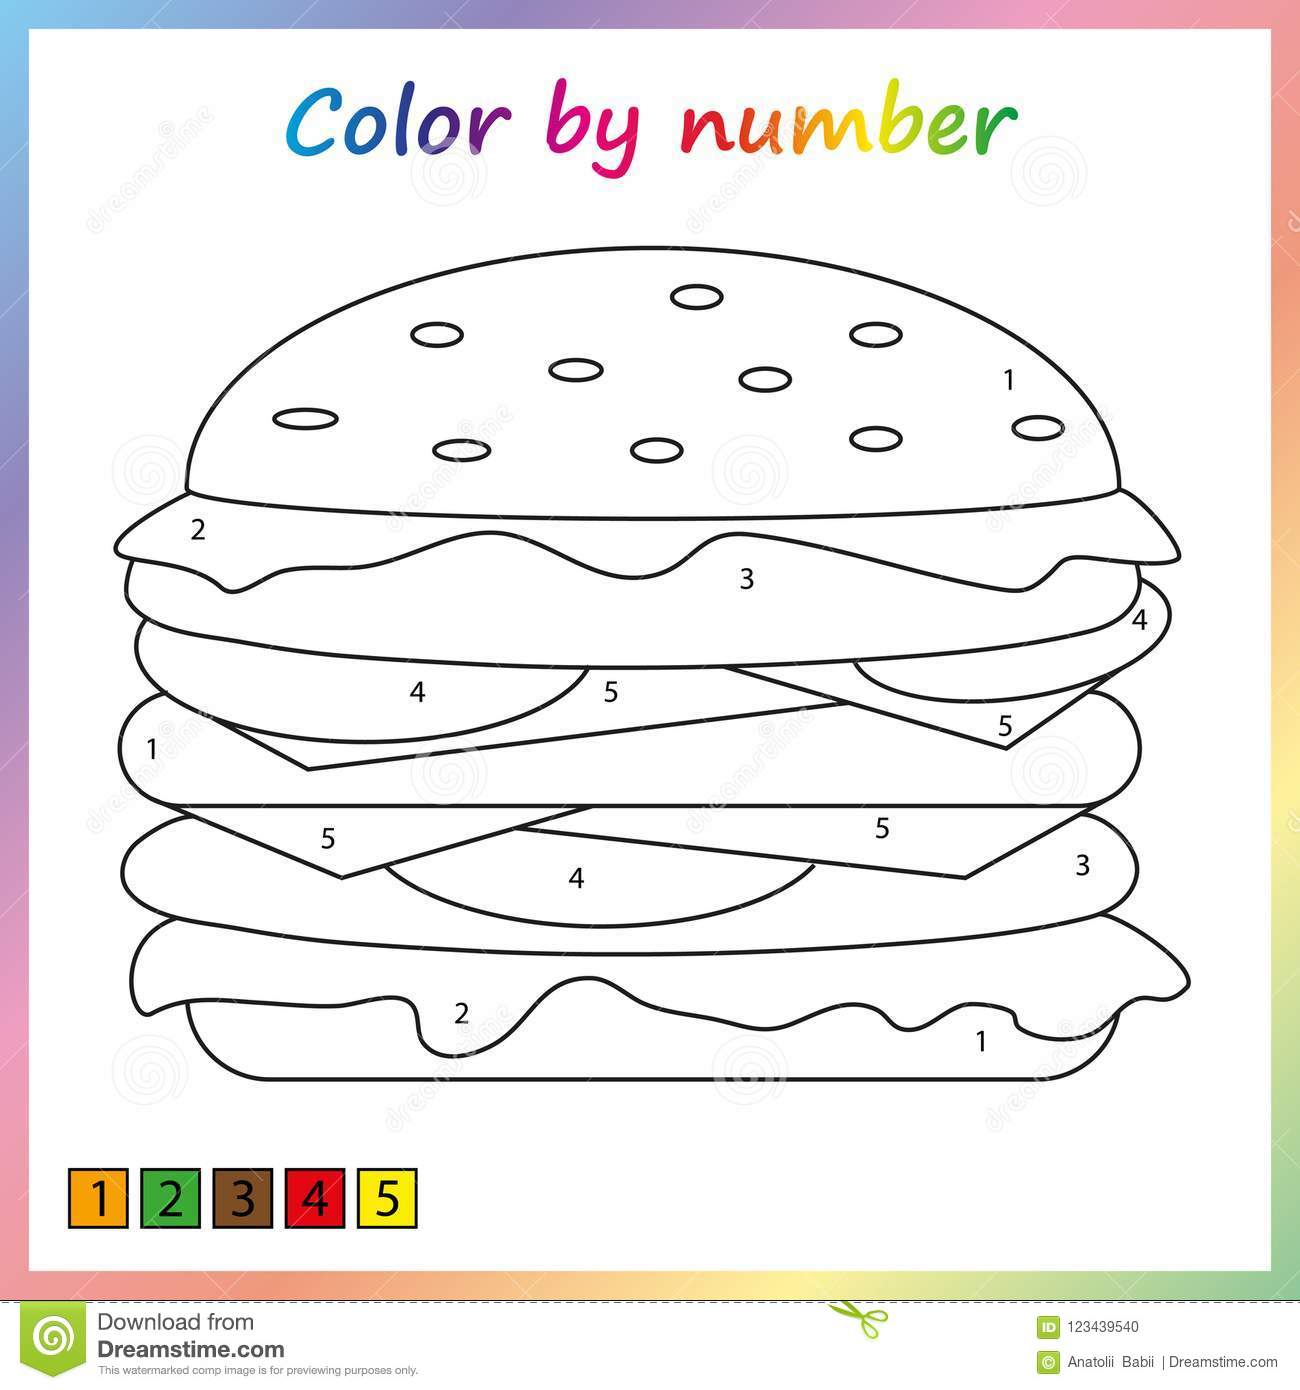 Paint Color By Number Worksheet